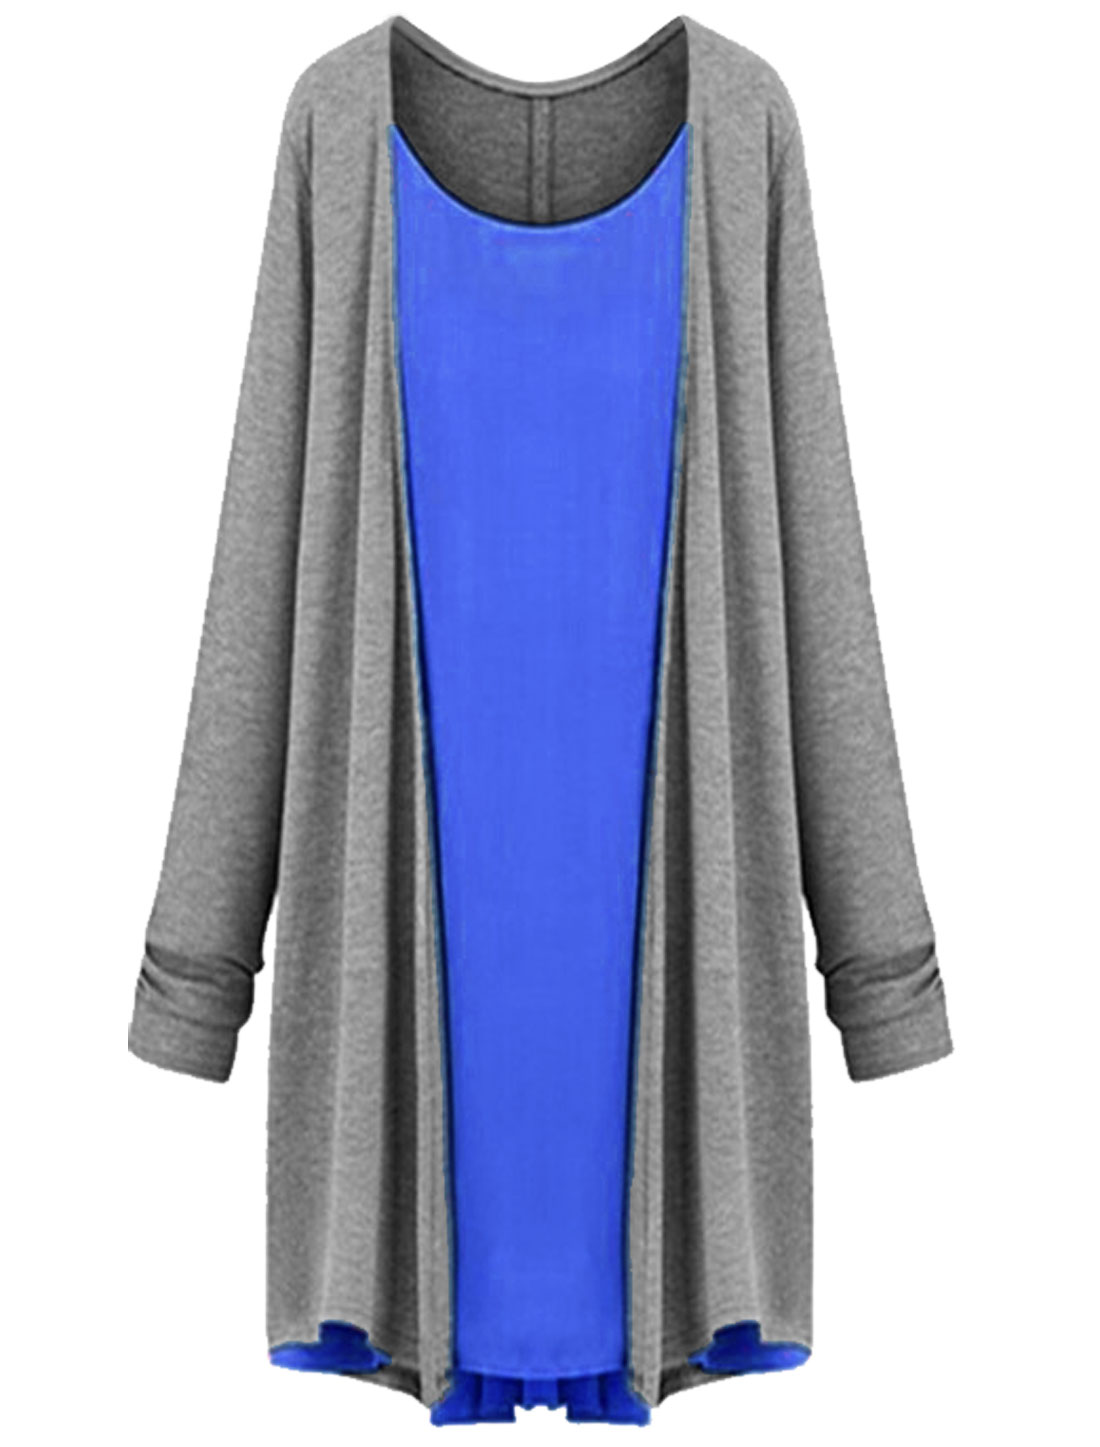 Long Sleeves Layered Shirts Casual Top for Women Royal Blue Gray M